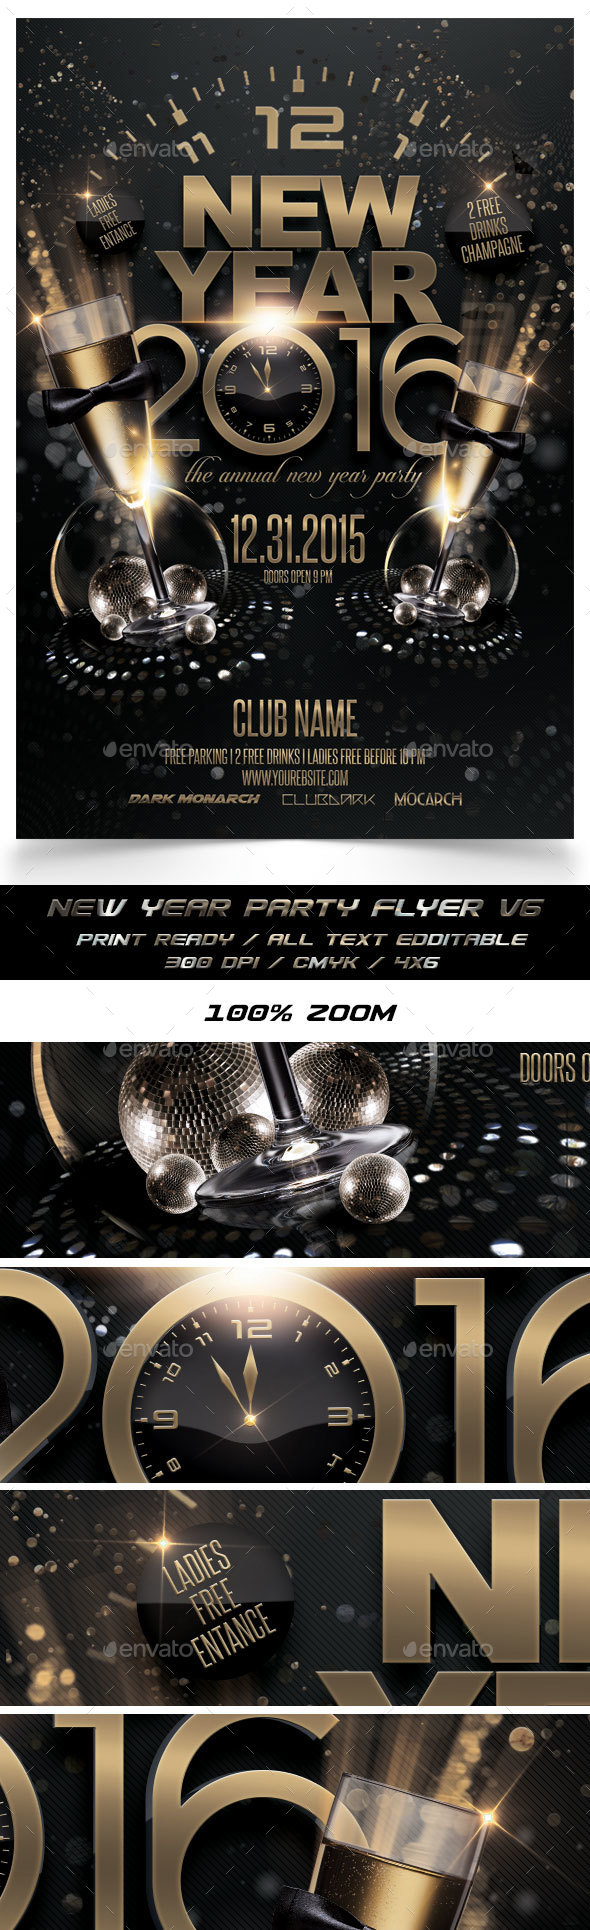 New Year Party Flyer V6 - Events Flyers